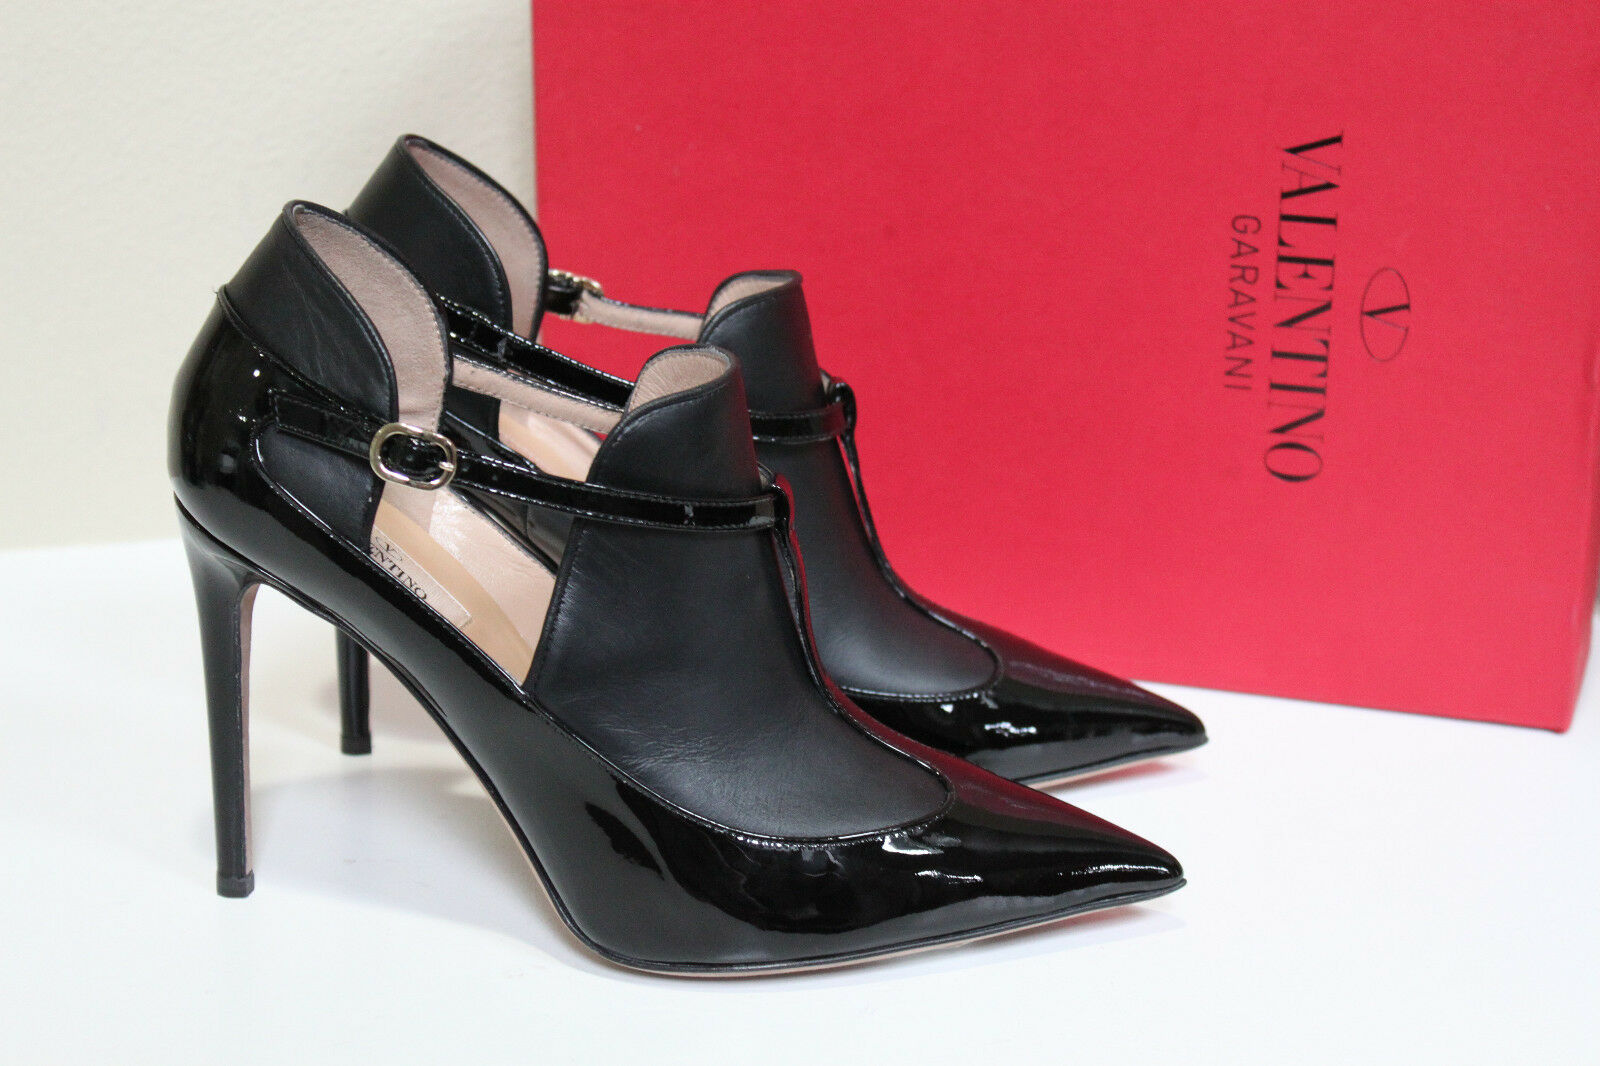 New sz 9 / 39 Valentino Black Matte & Patent Leather Pointy Toe Ankle Boot Shoes